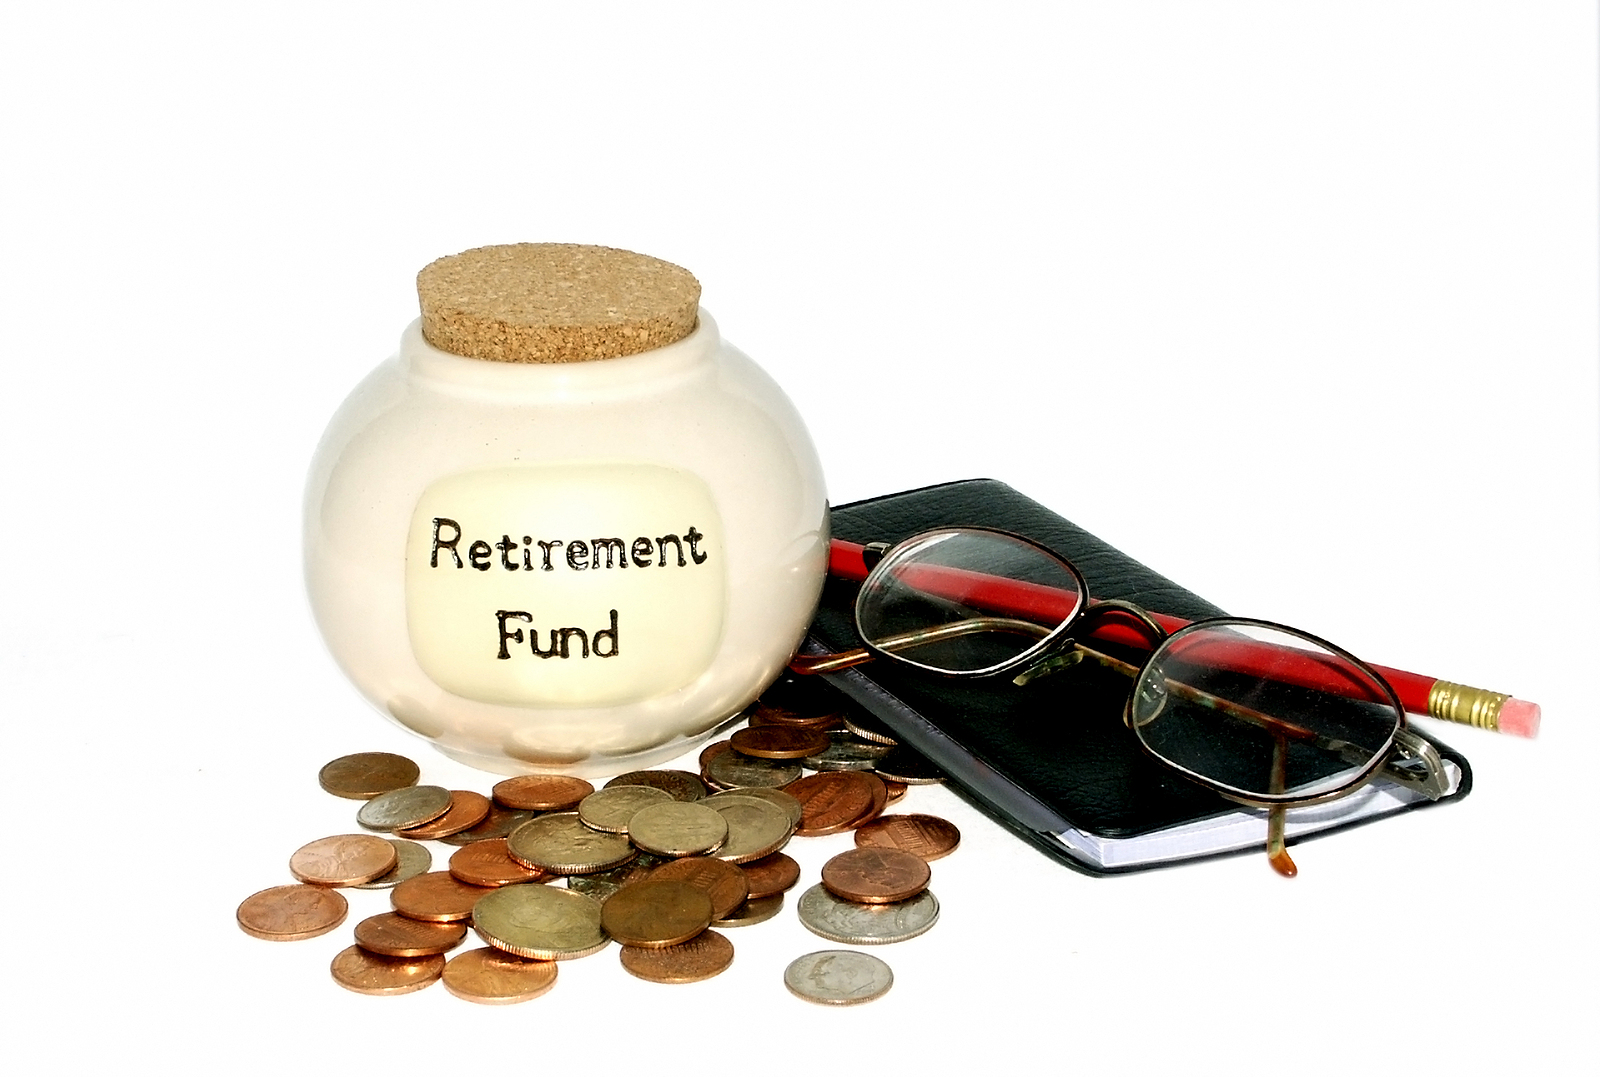 4 Basics of 401(k) Plans Employees Need to Know